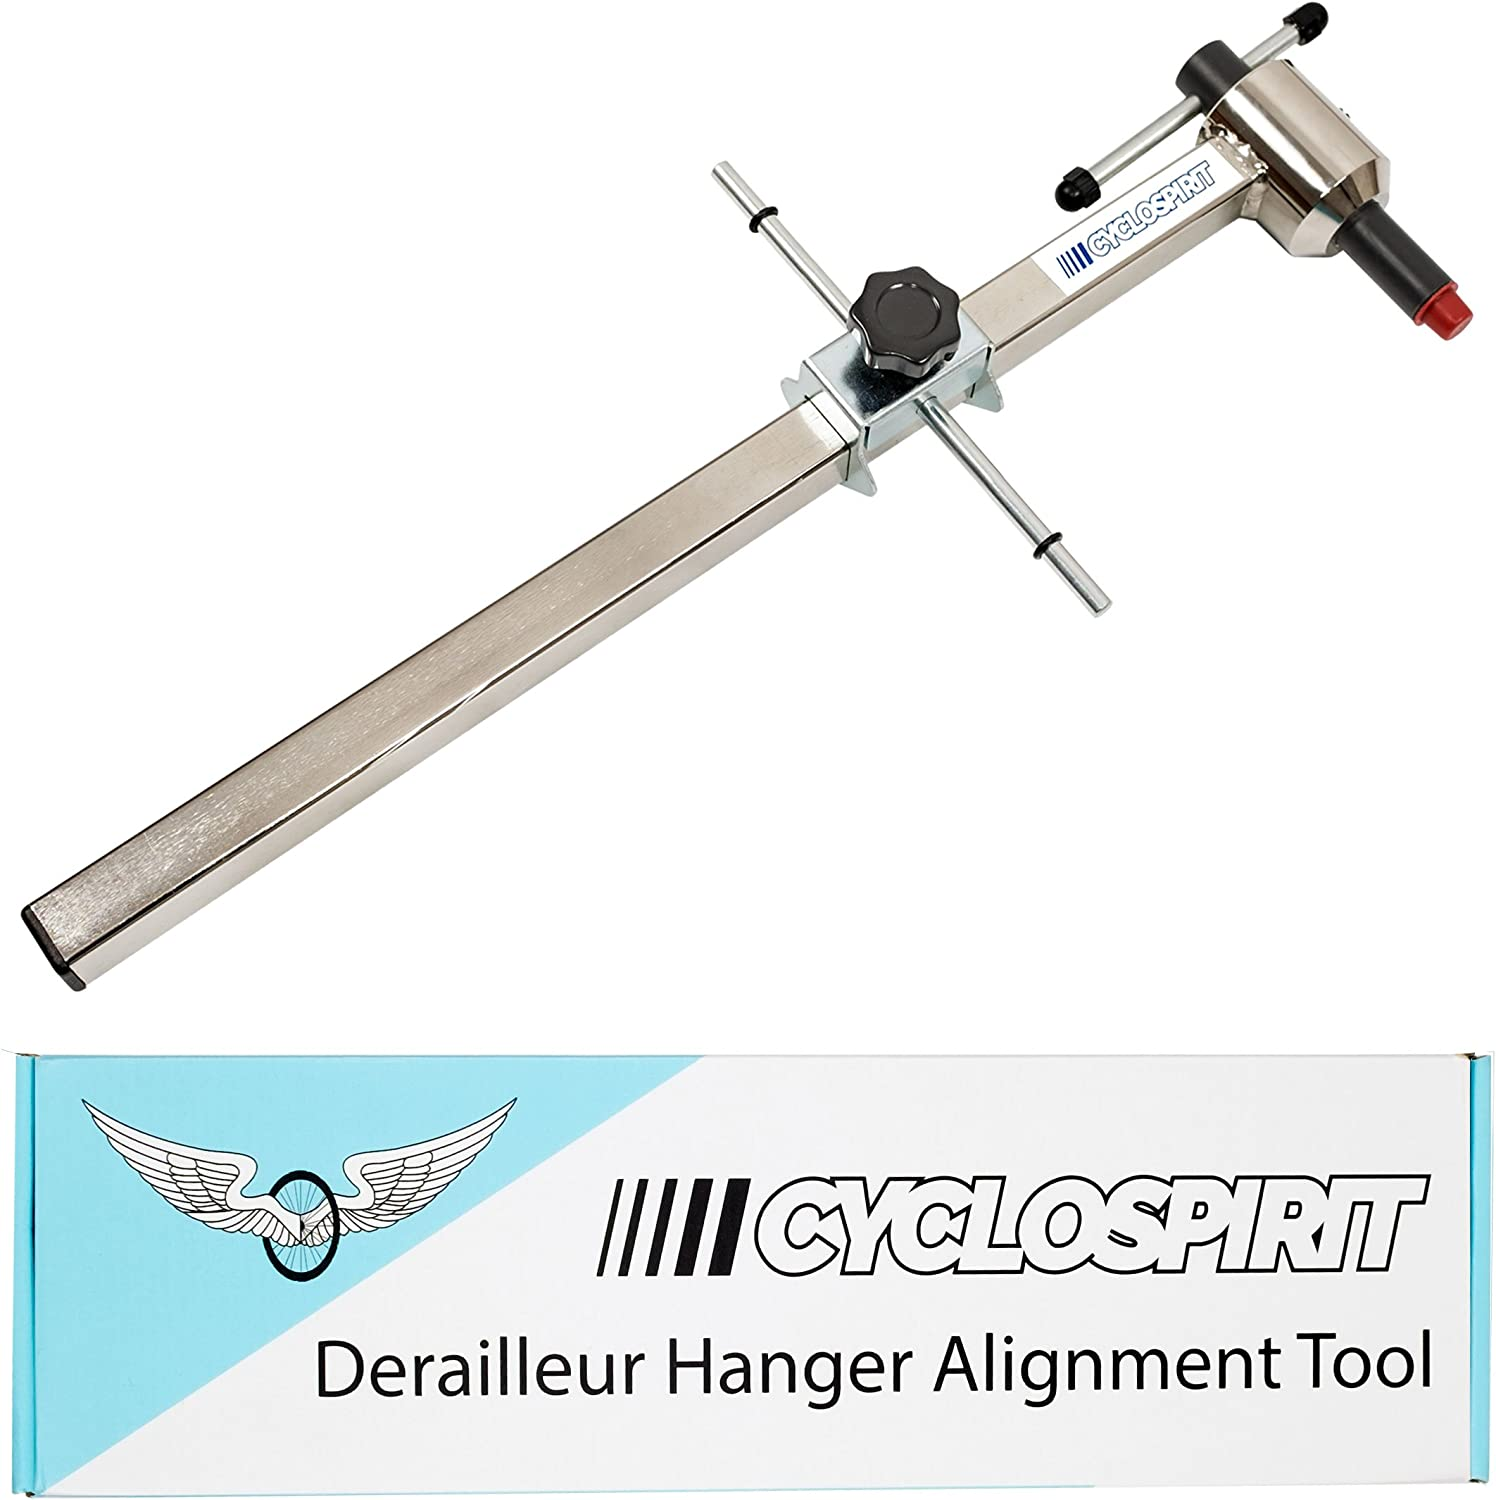 CycloSpirit Derailleur Hanger Alignment Gauge